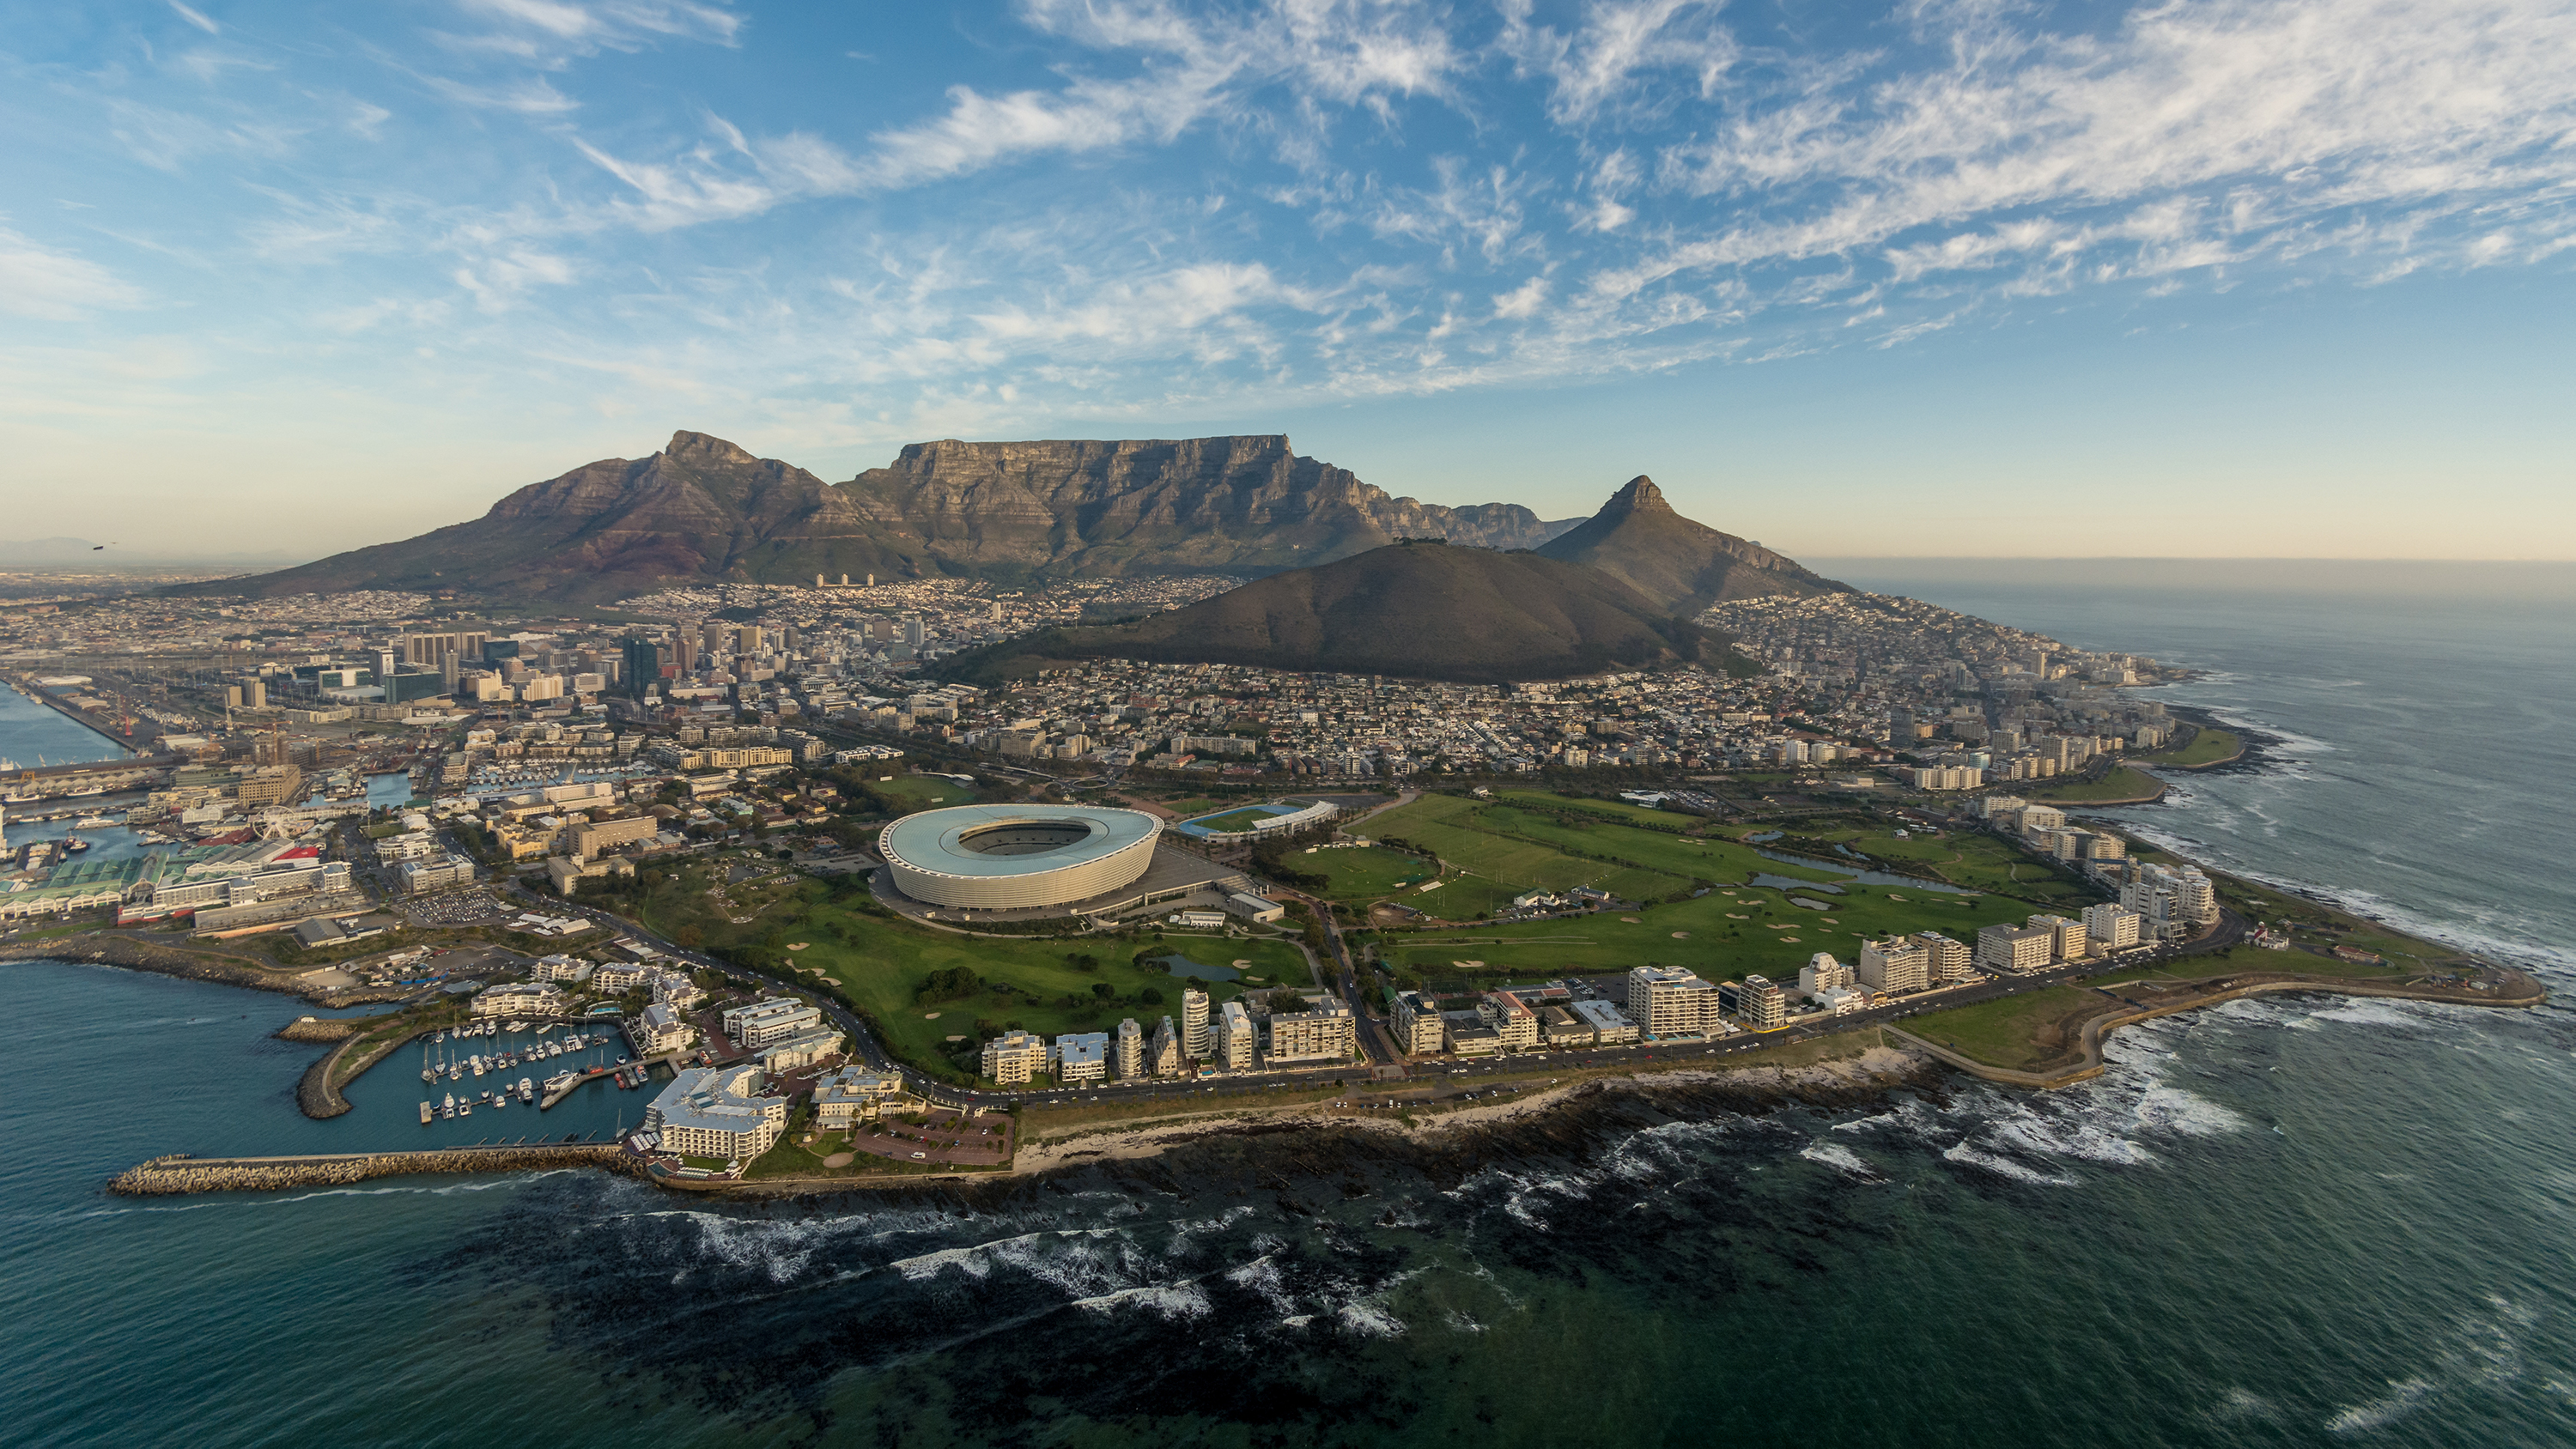 25 of Africa's most amazing places to visit | CNN Travel